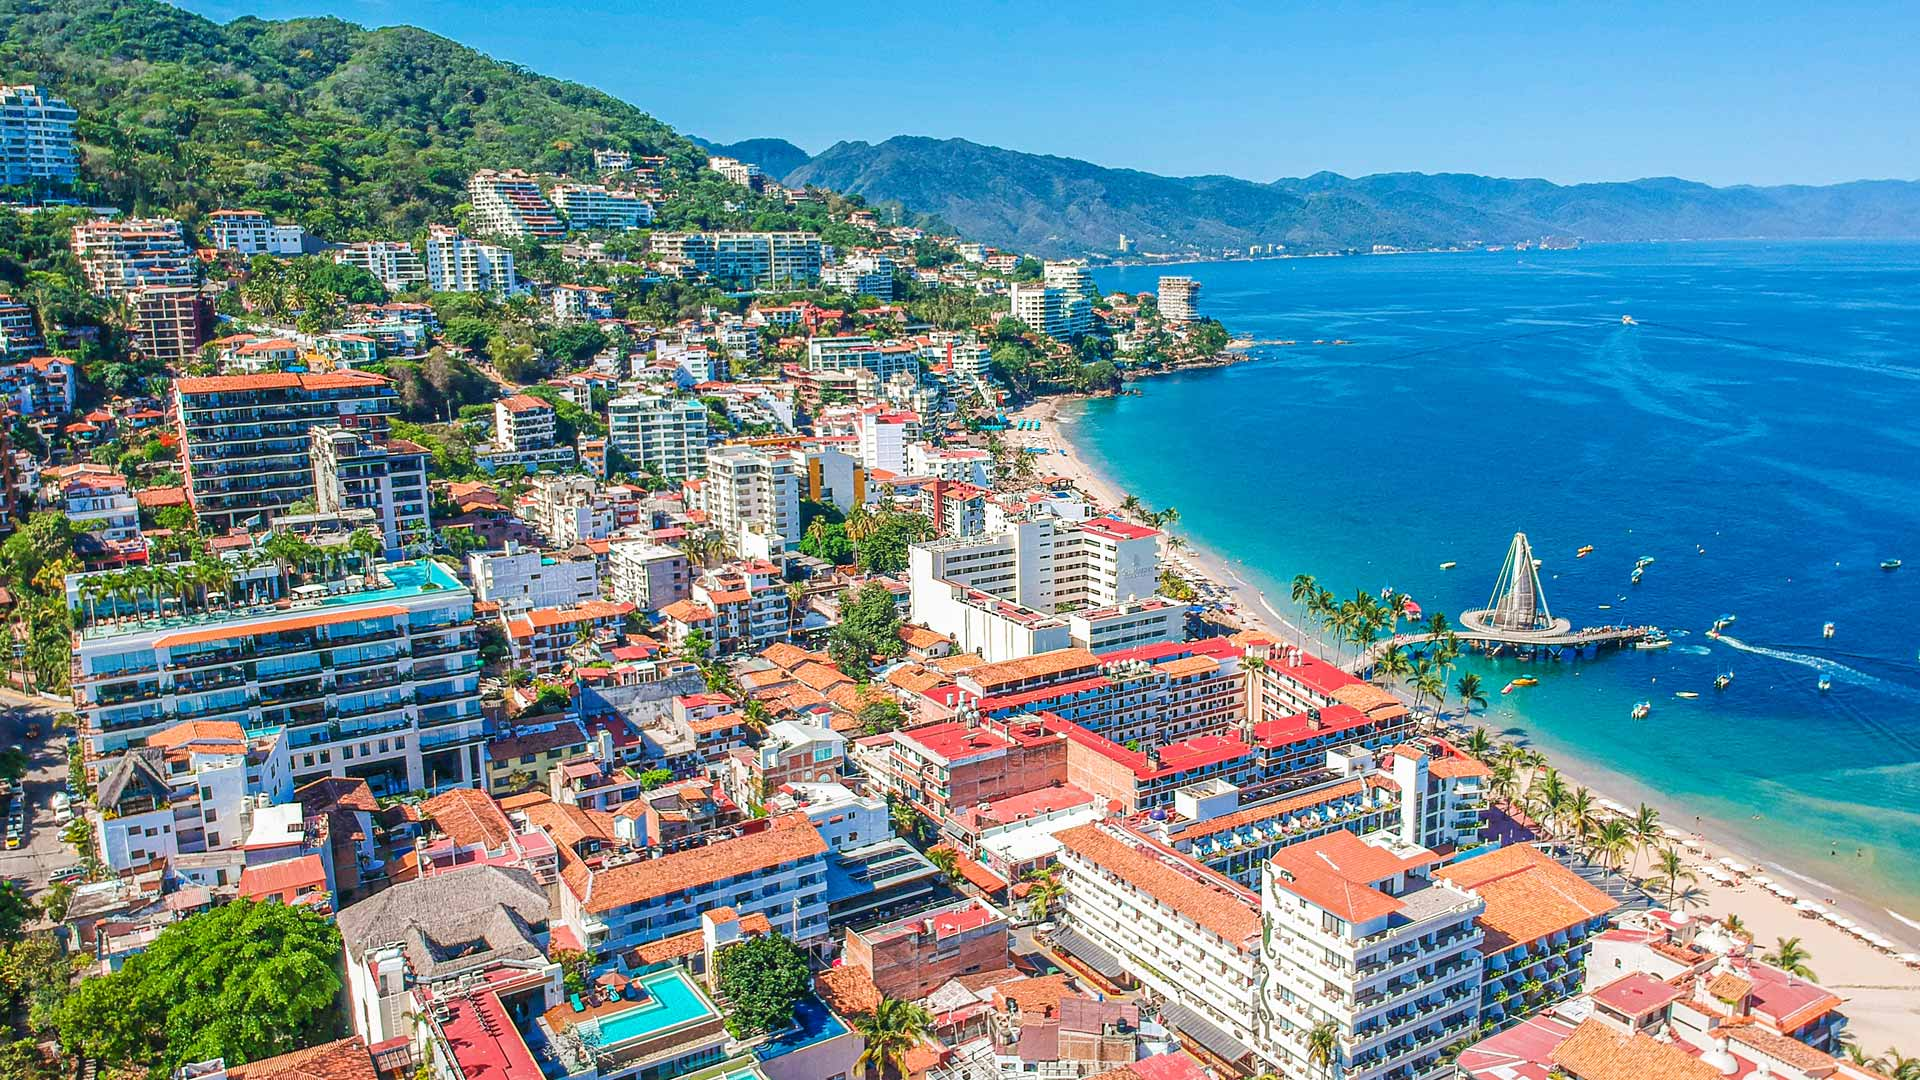 Your Guide for 20 Things to do in Puerto Vallarta